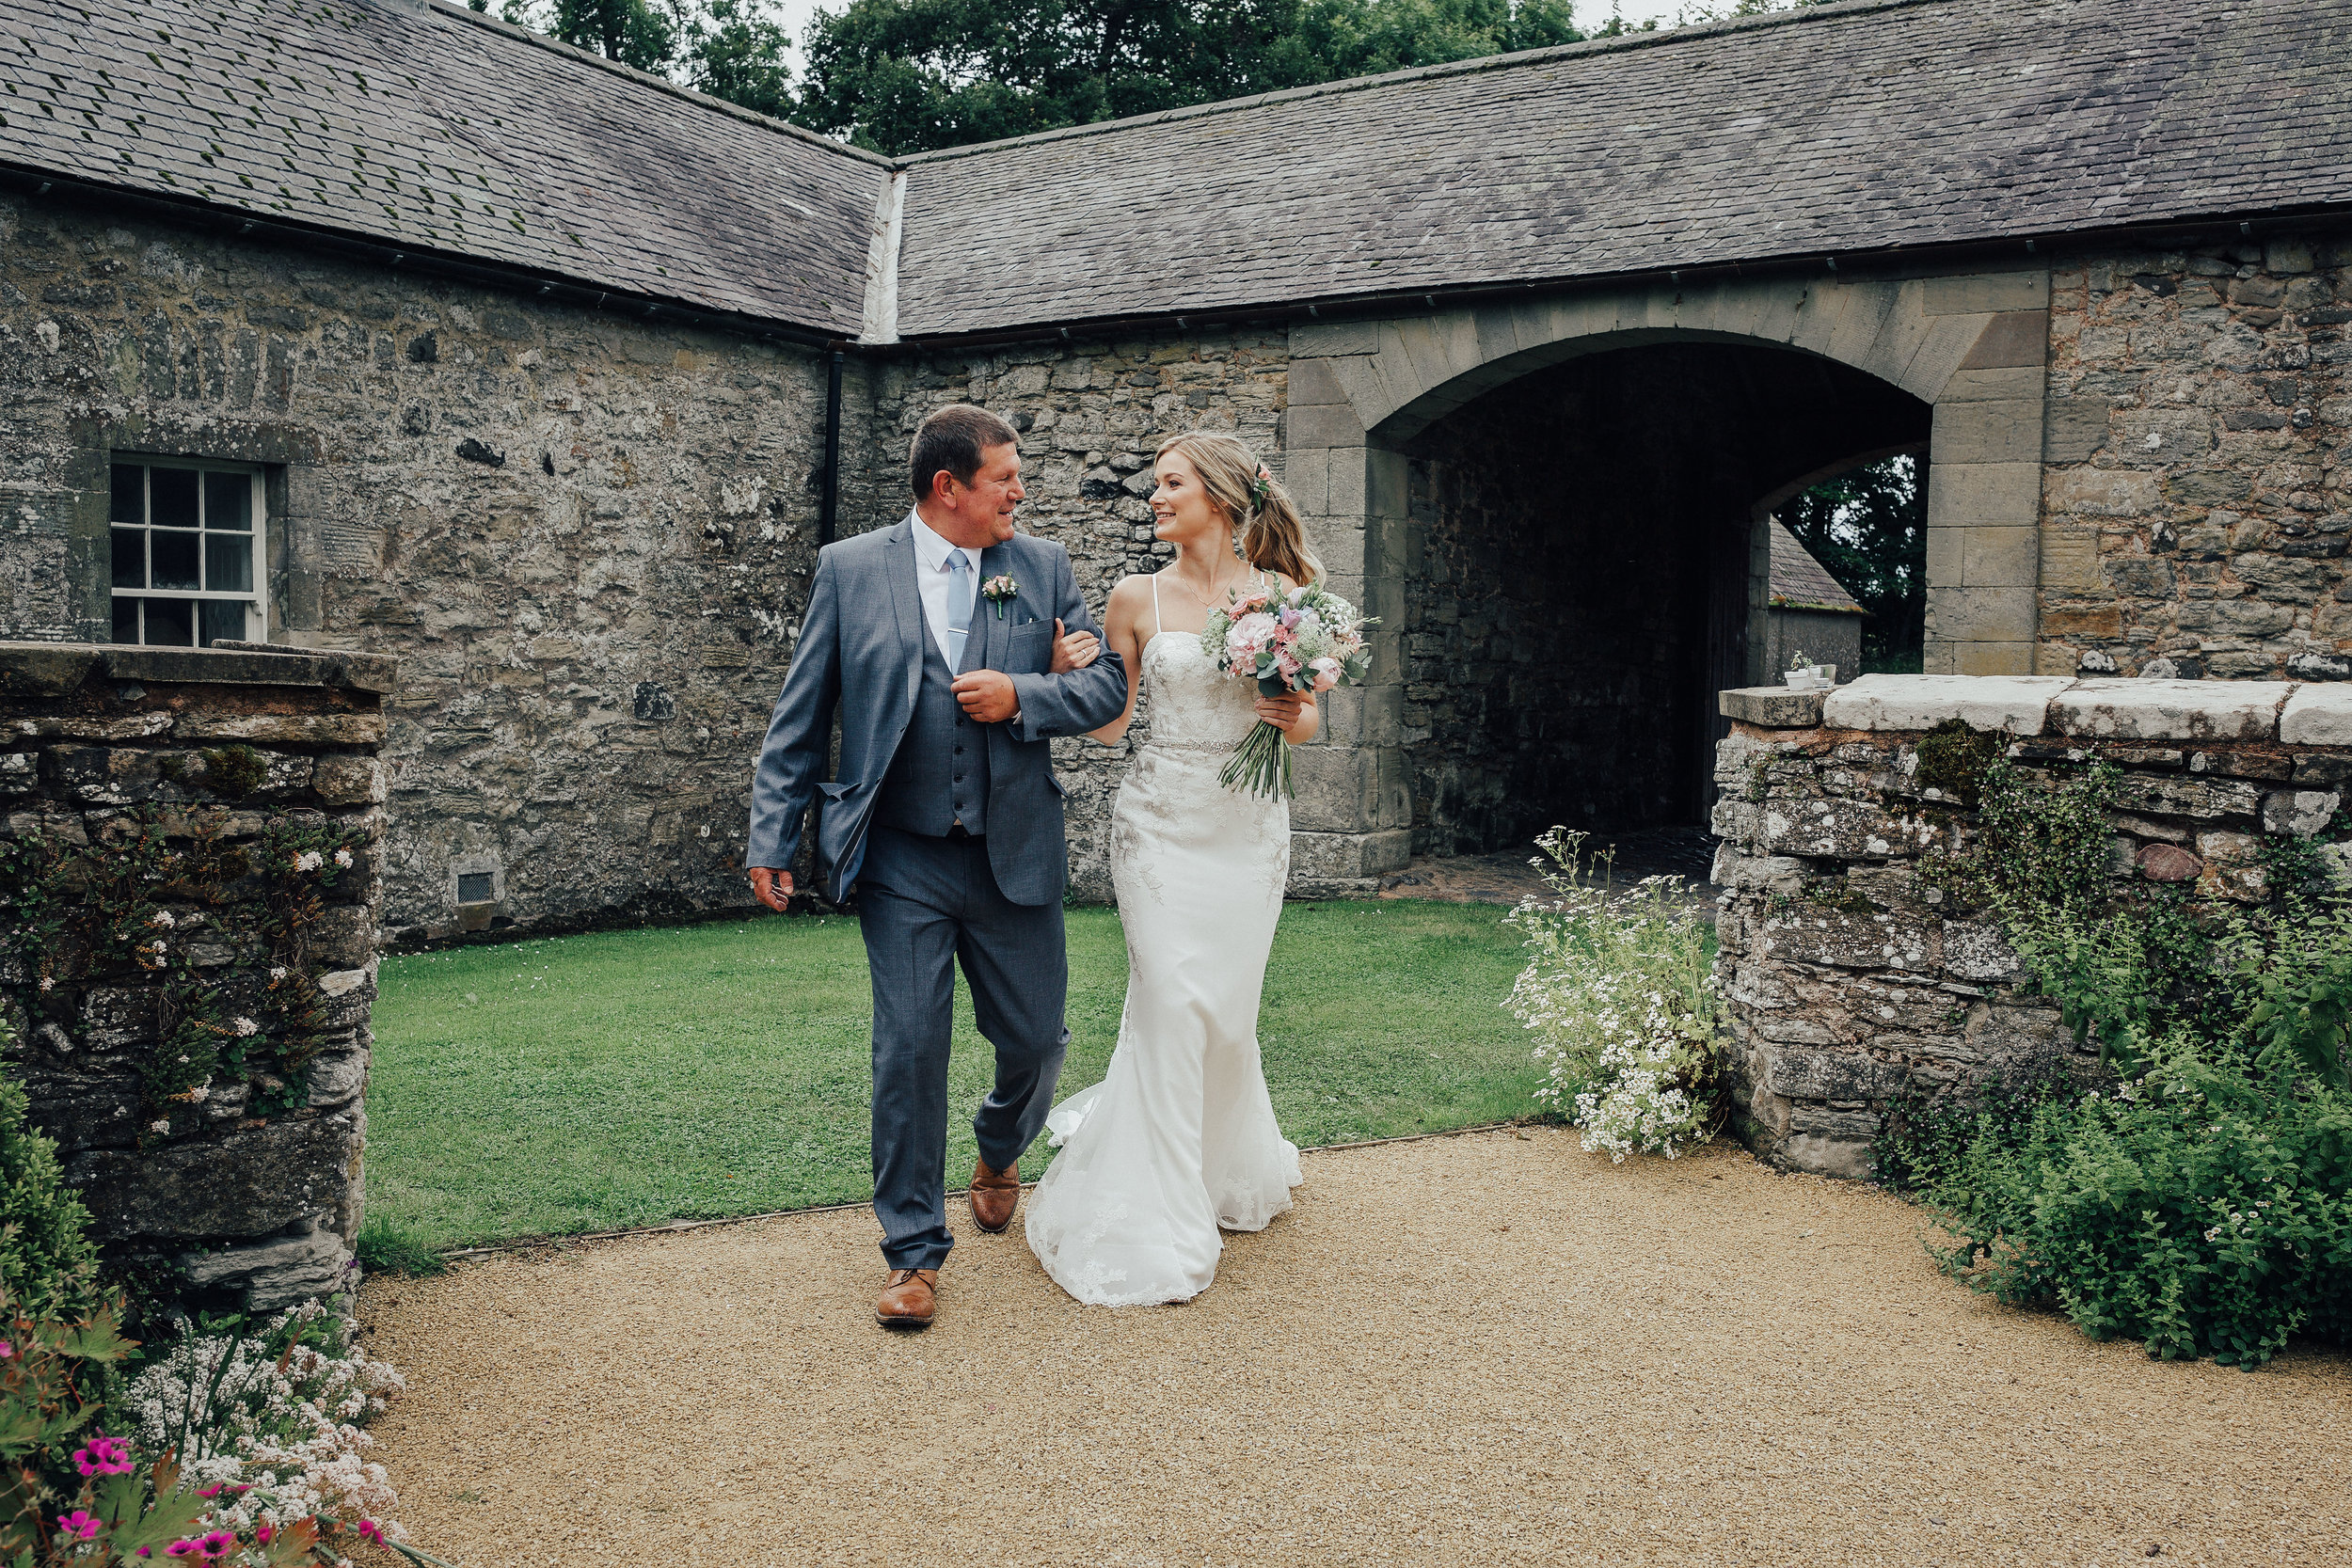 PJ_PHILLIPS_PHOTOGRAPHY_EDINBURGH_WEDDERBURN_BARNS_WEDDING_EDINBURGH_WEDDING_PHOTOGRAPHER_61.jpg